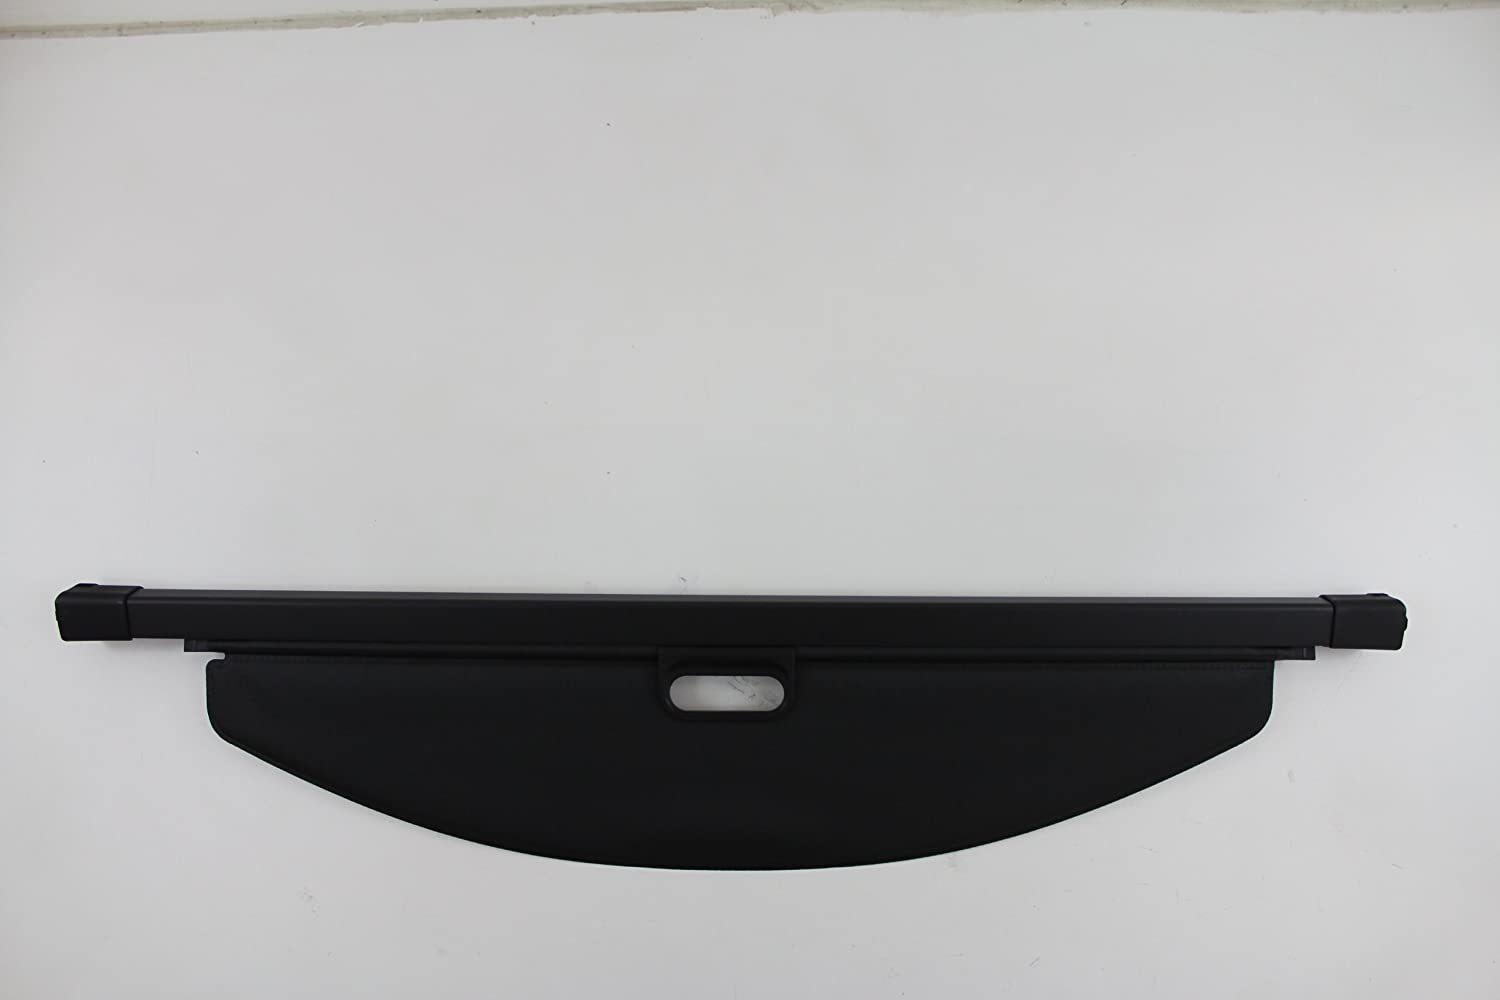 Genuine Acura Accessories 08Z07-TX4-210A Cargo Cover